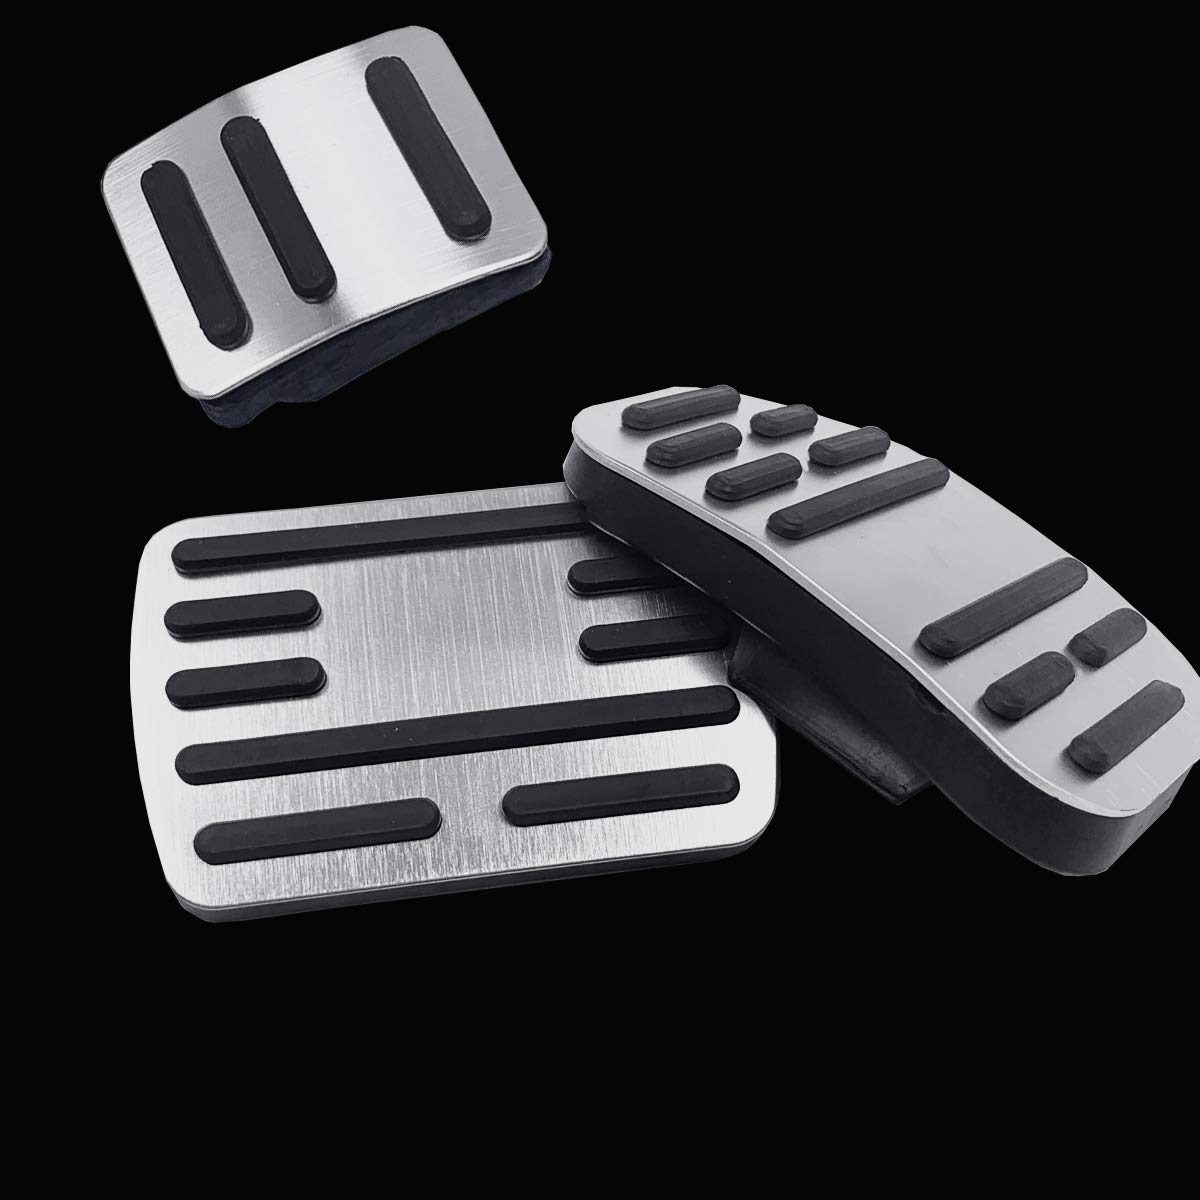 2PC Set Jaronx No Drill Pedal Covers for Ford F150 Aluminum Alloy Anti-Slip Gas Pedal Cover Break Pedal Pad at Accelerator Pedal Covers for Ford F150 2019